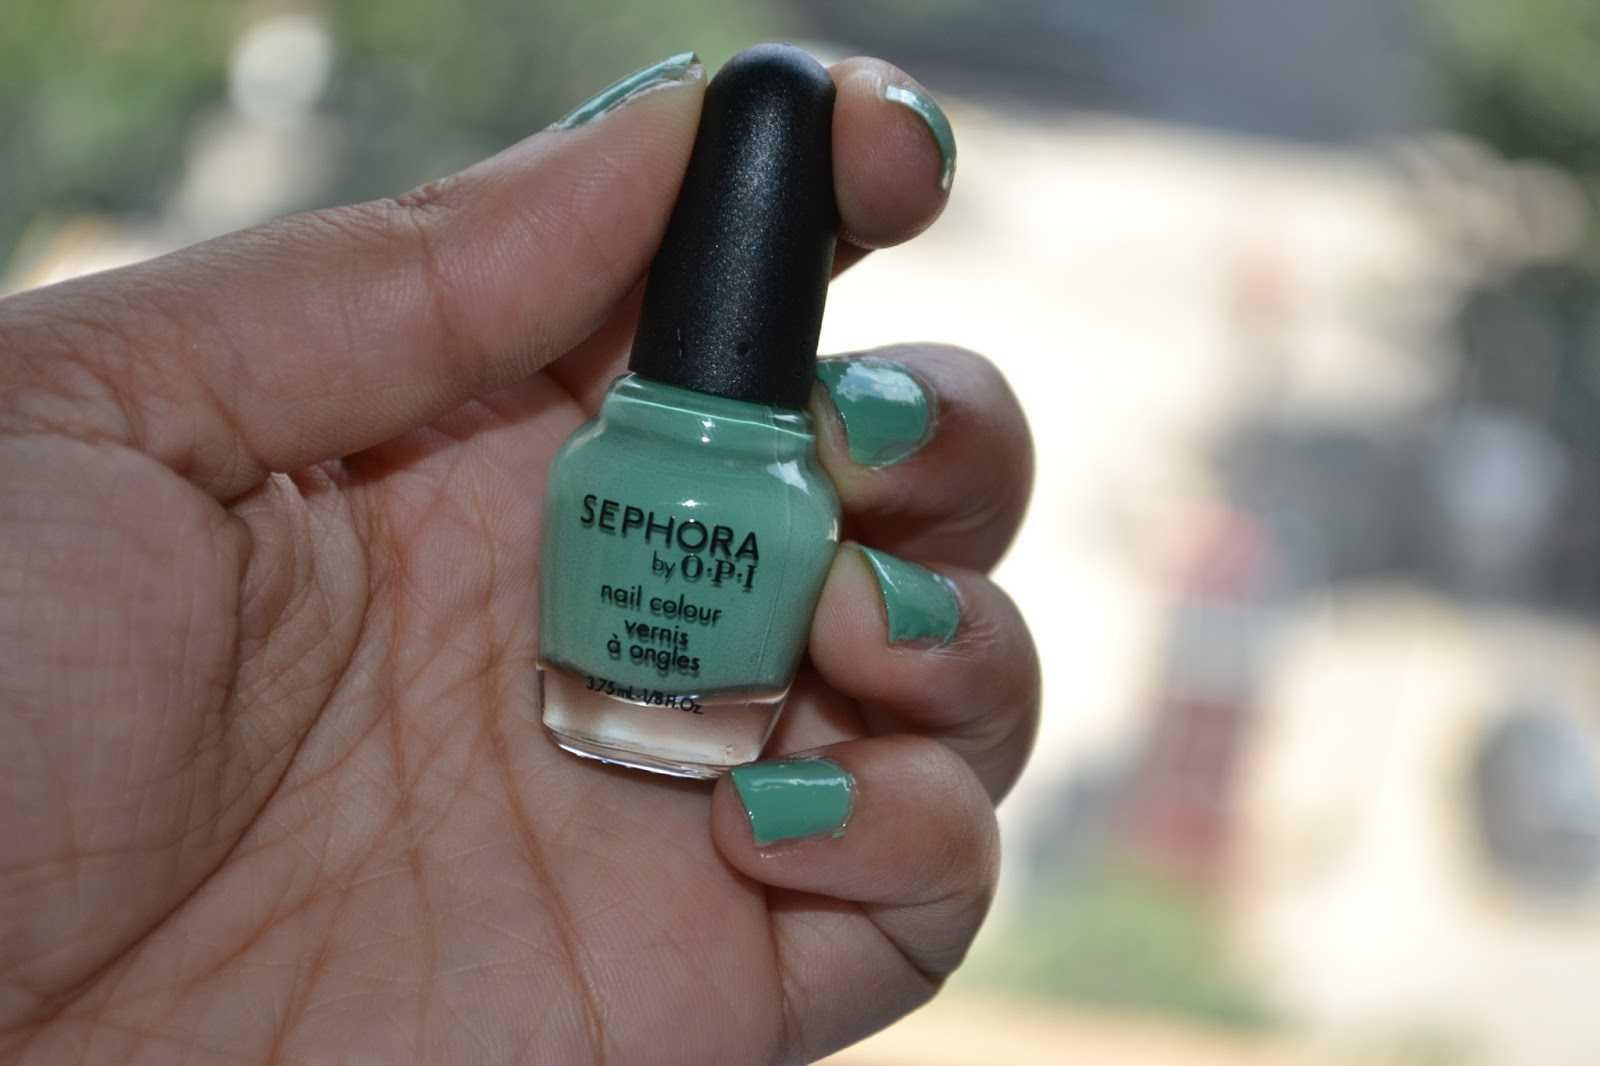 READ MY PALM BY SEPHORA OPI